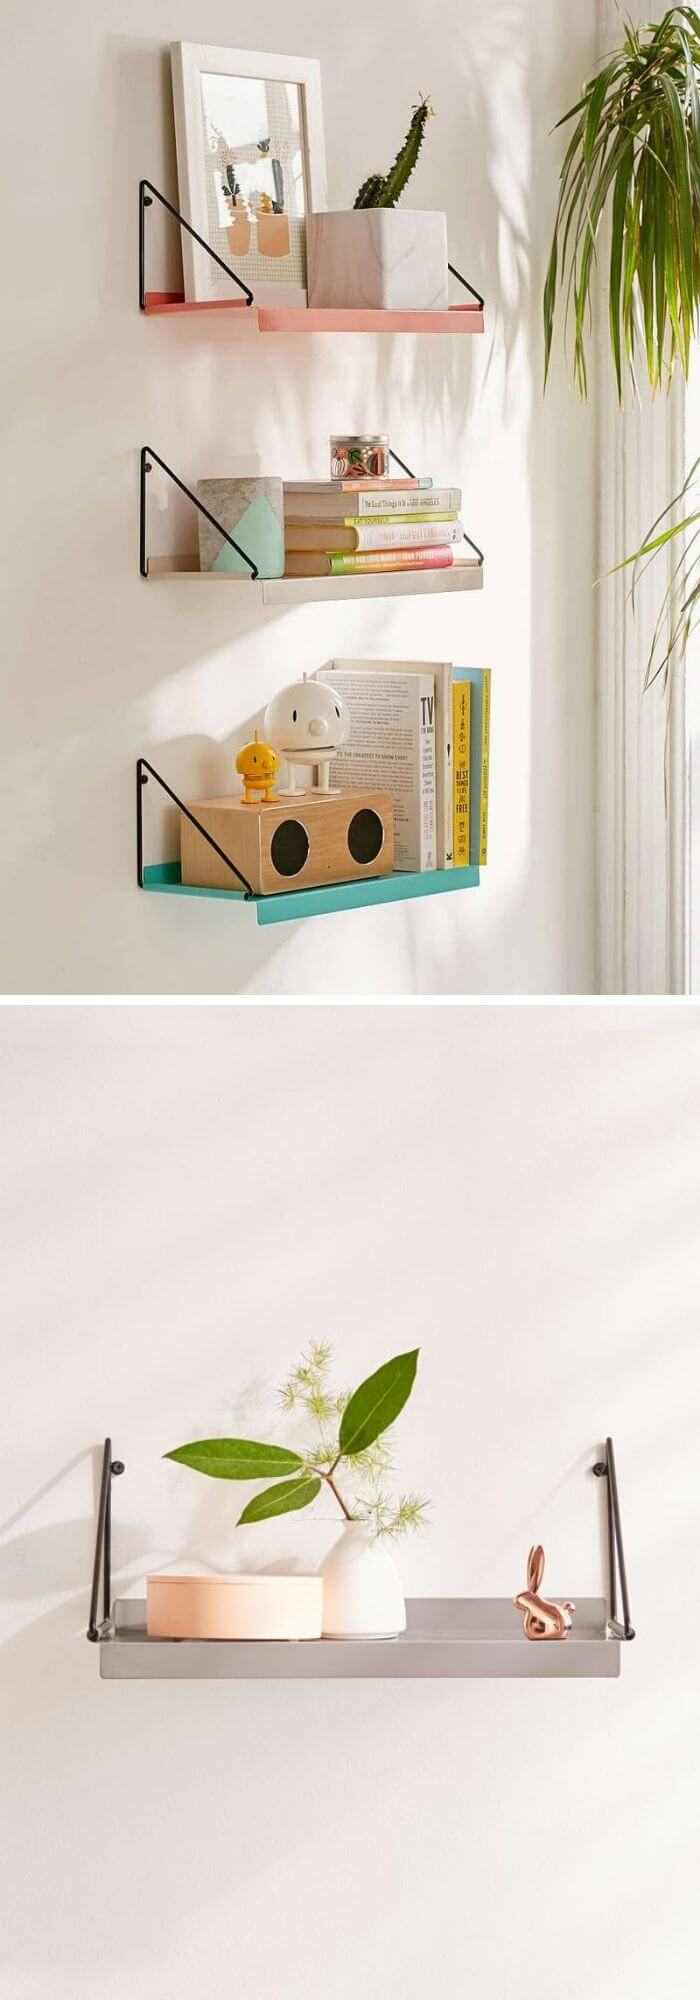 Organize your books by color, show off your cute office supplies